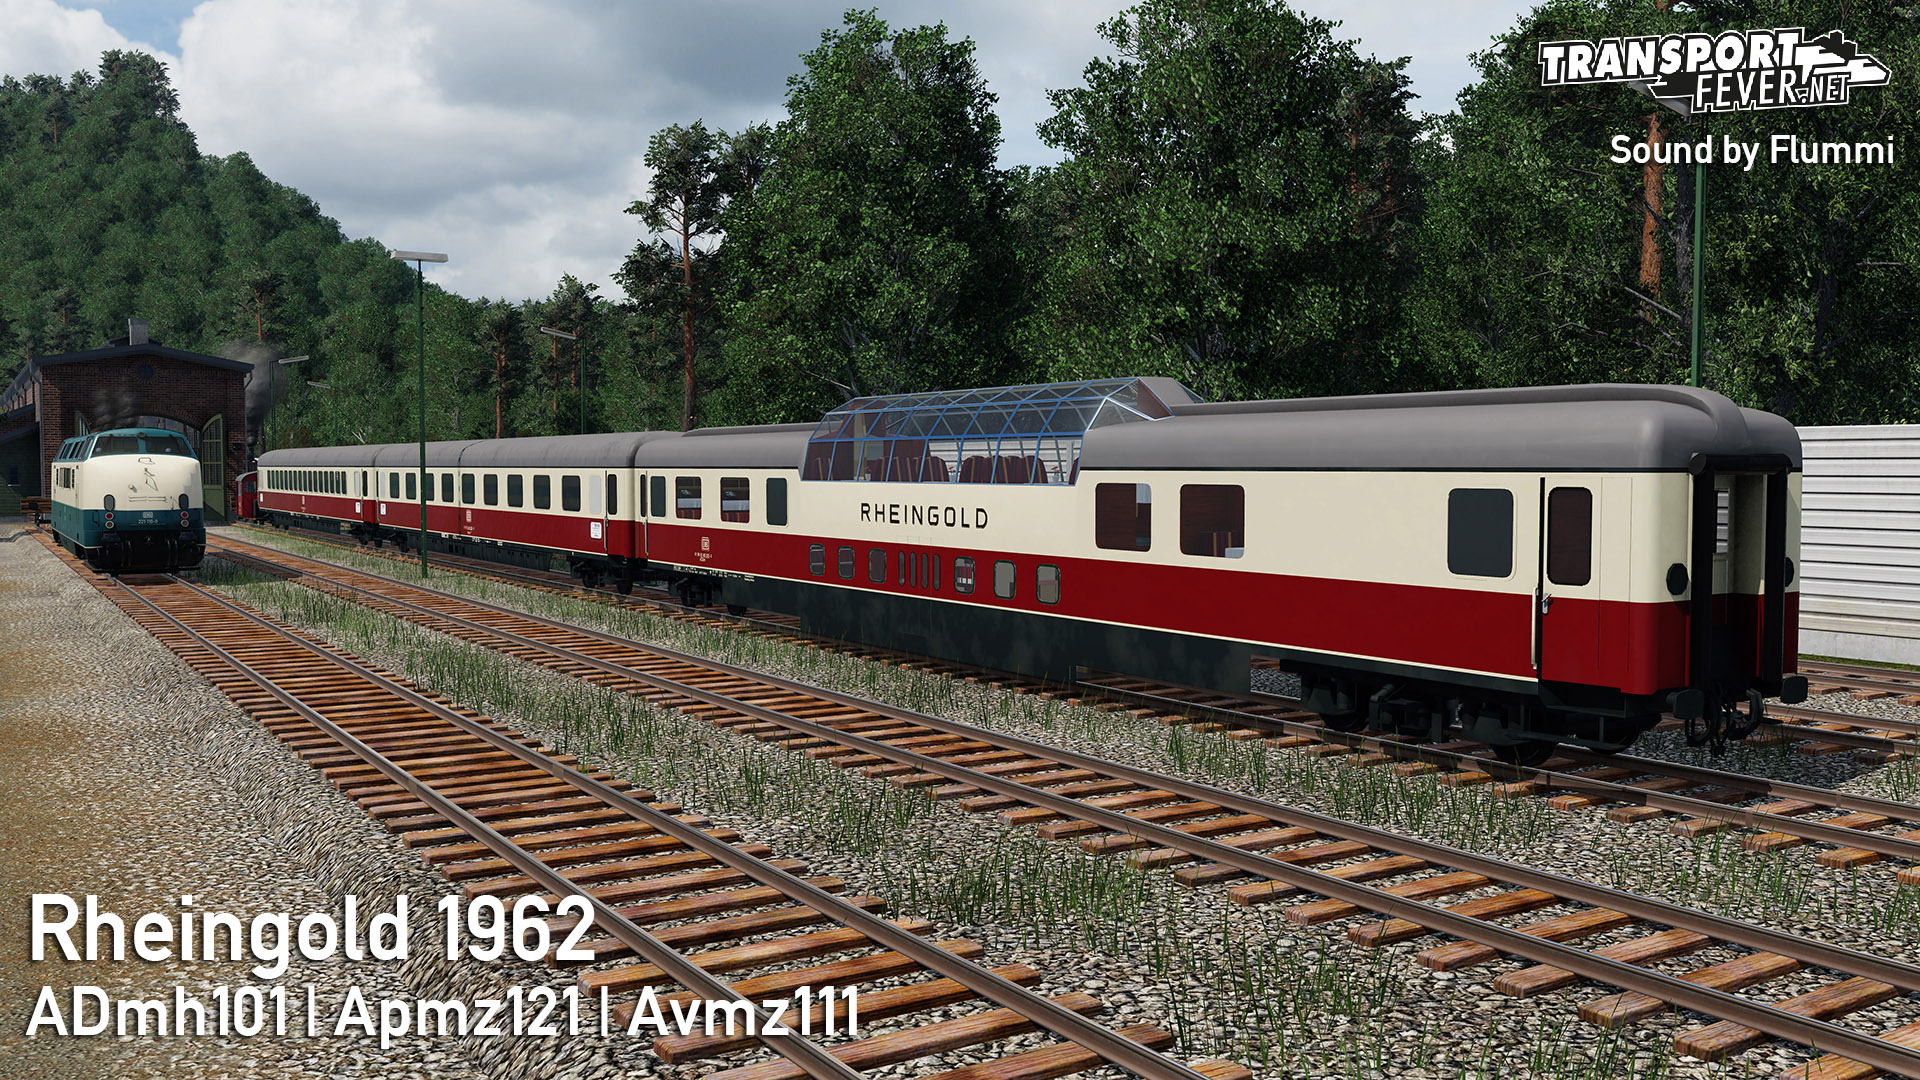 Transport Fever 2 - Rheingold 1965